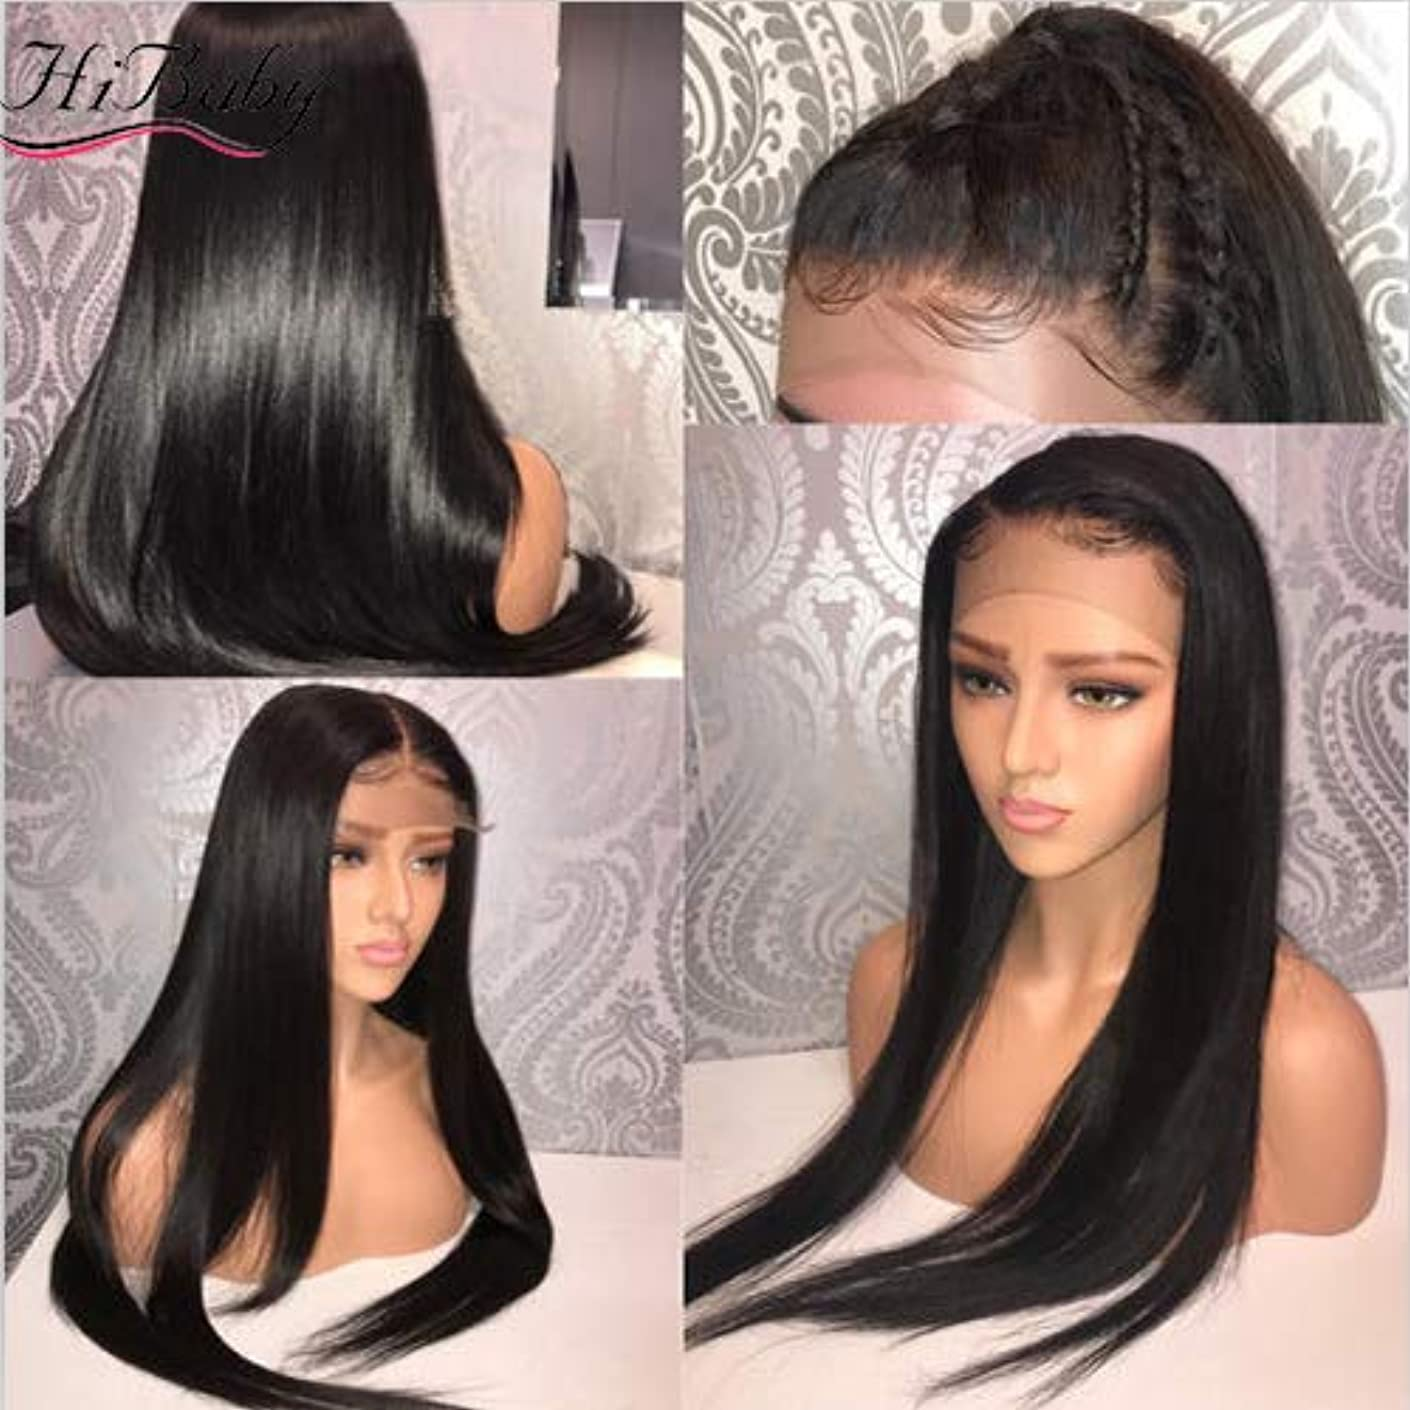 Straight 13x6 Lace Front Human Hair Wigs With Baby Hair For Black Women Deep Parting Remy Hair Glueless Lace Front Wig Pre Plucked Hibaby Hair With 18 inch (206g)